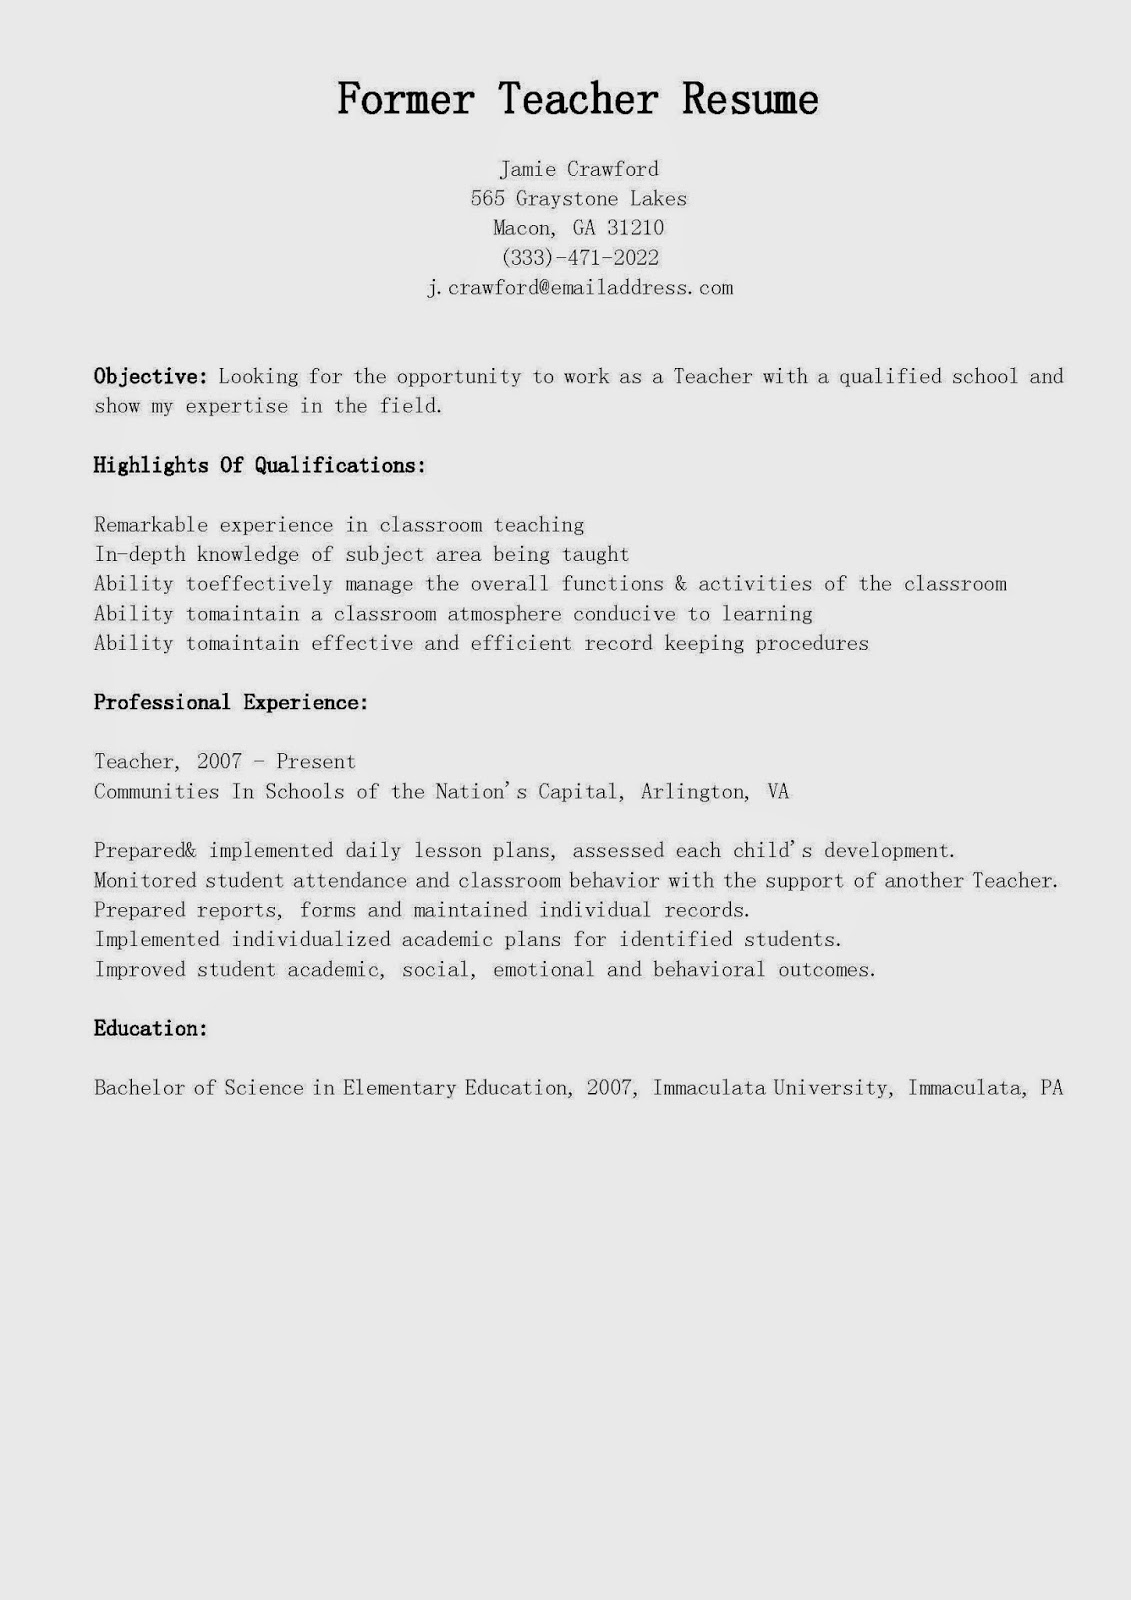 Resume Samples Former Teacher Resume Sample